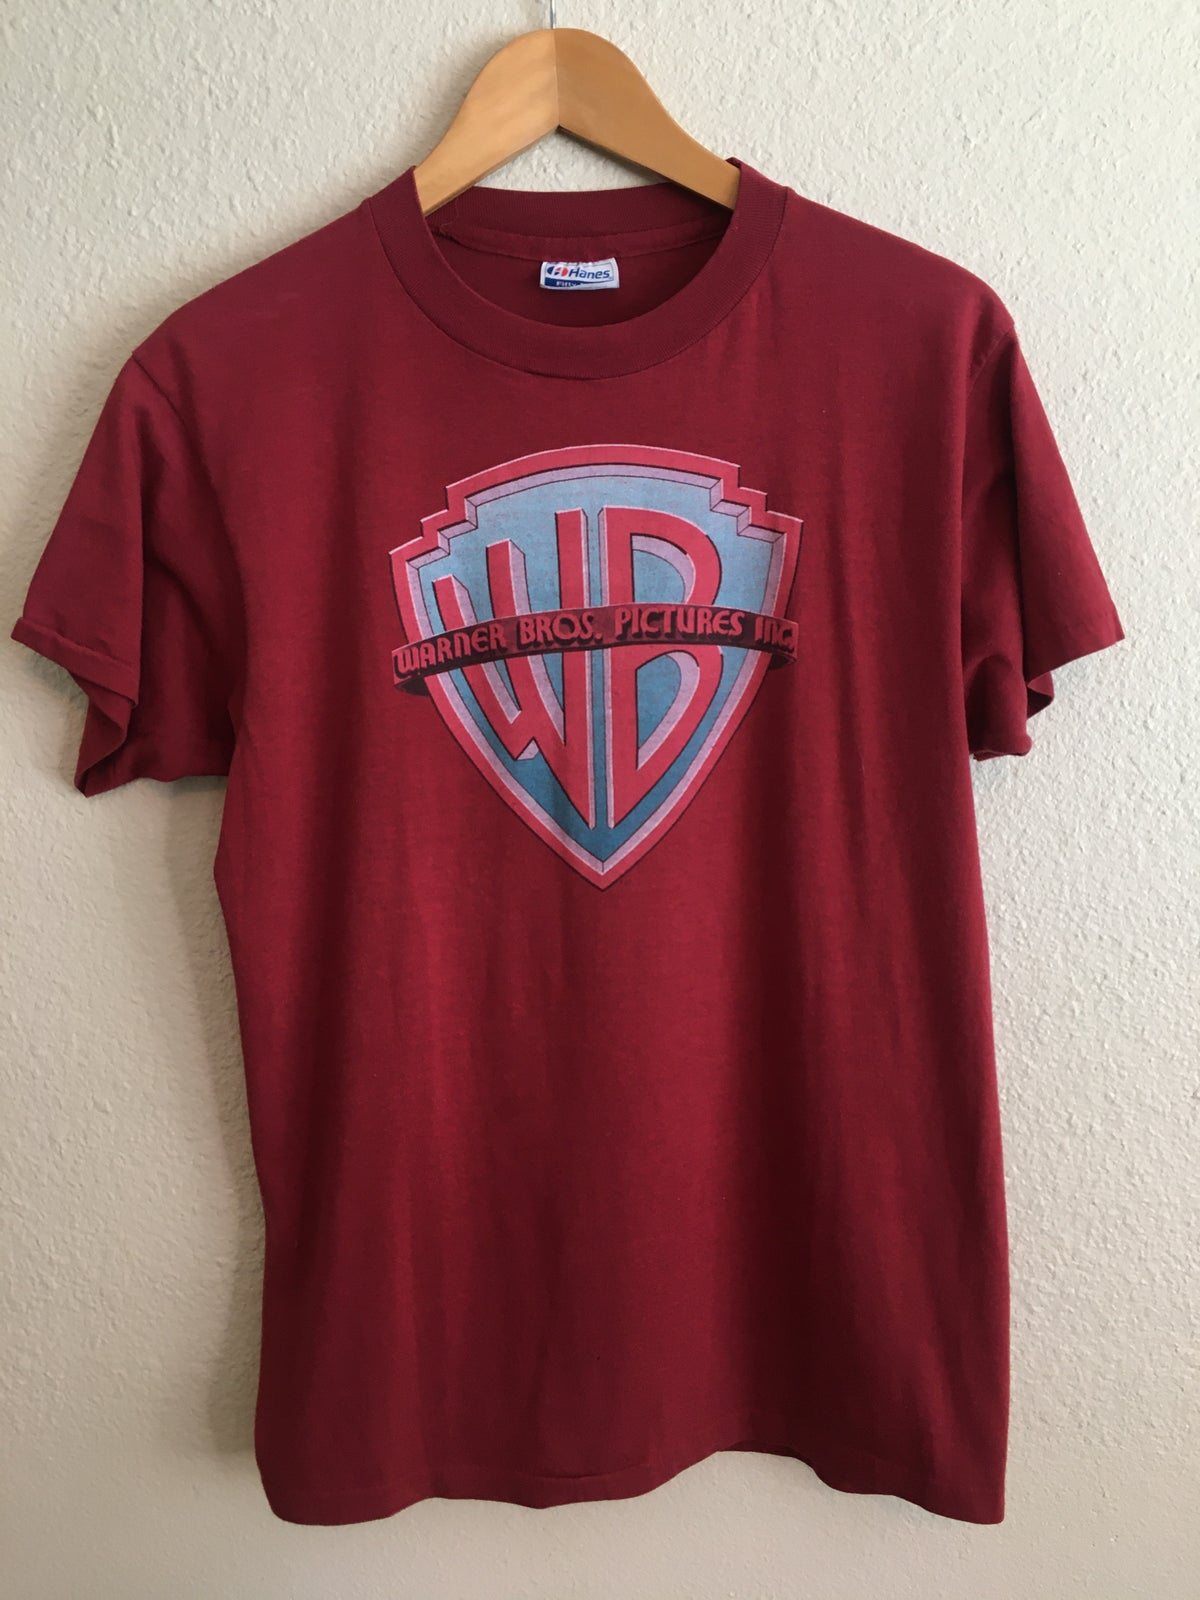 80's Warner Brothers  Pictures Inc Logo Tee